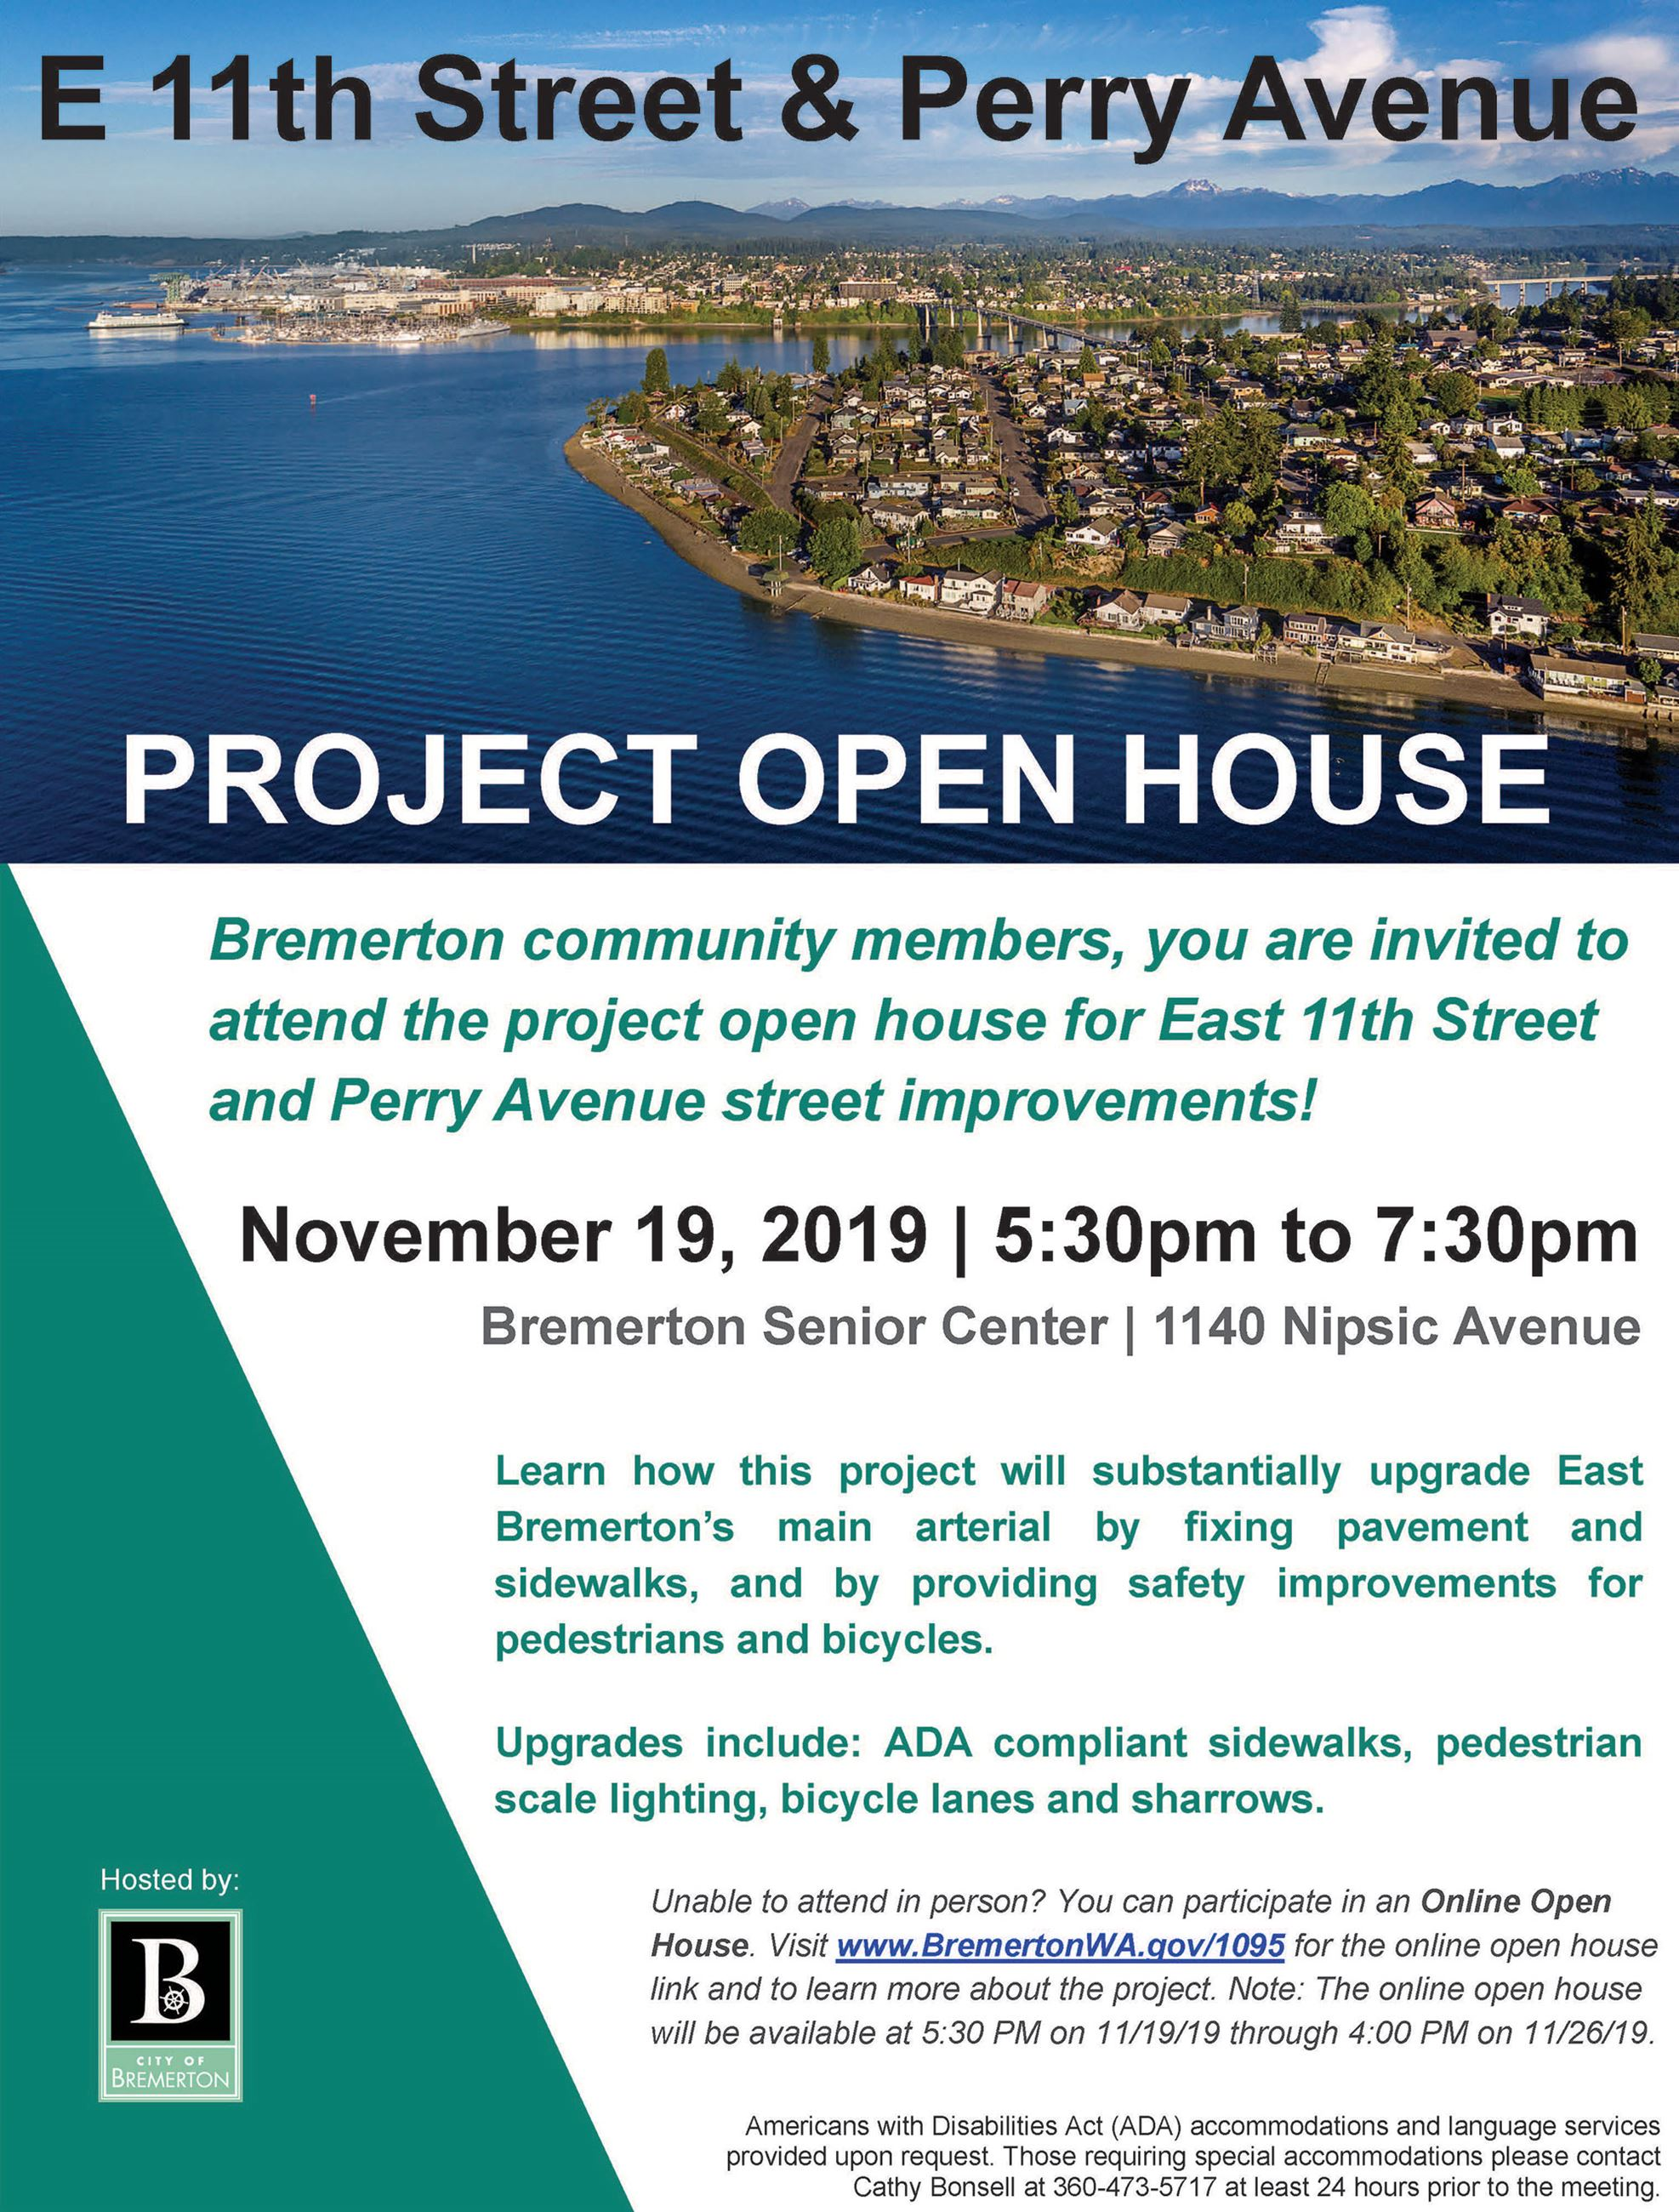 E 11th and Perry Ave Open House